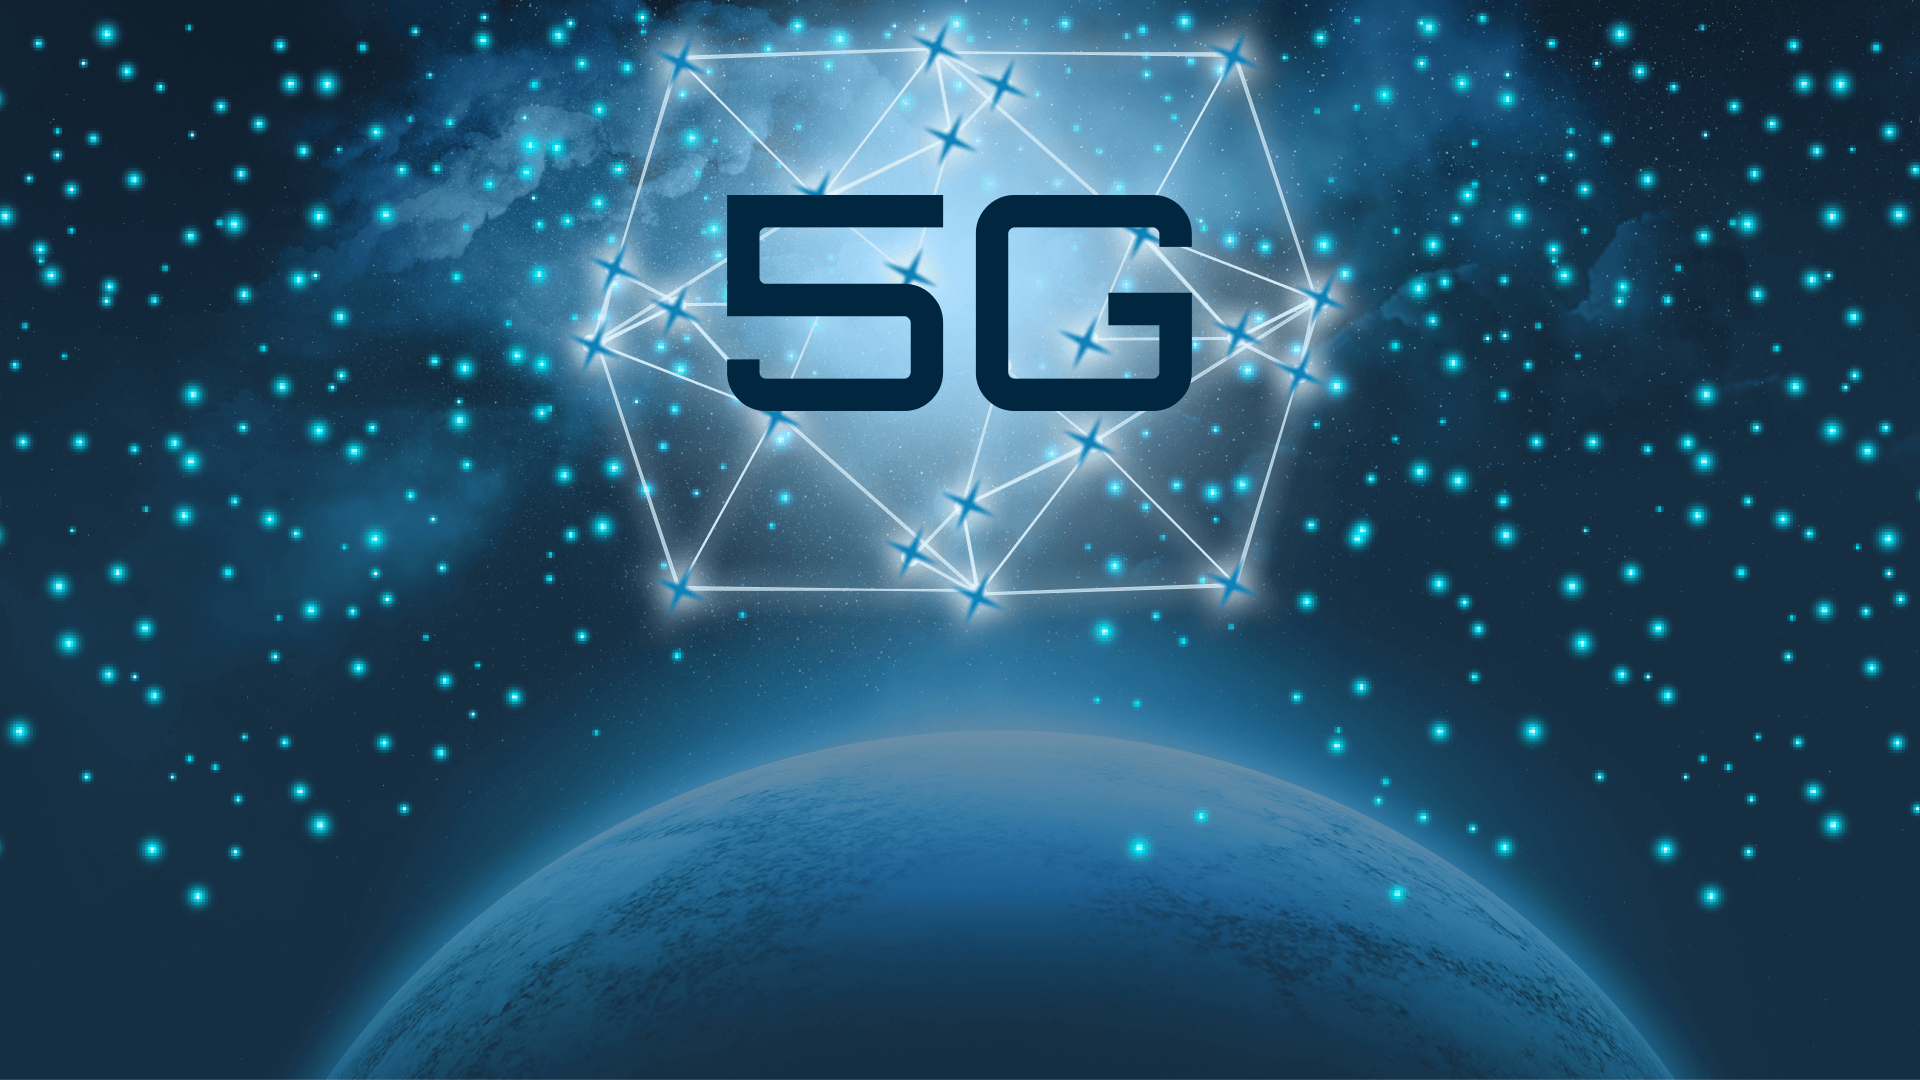 Benefits of Applying 5G to Your Business